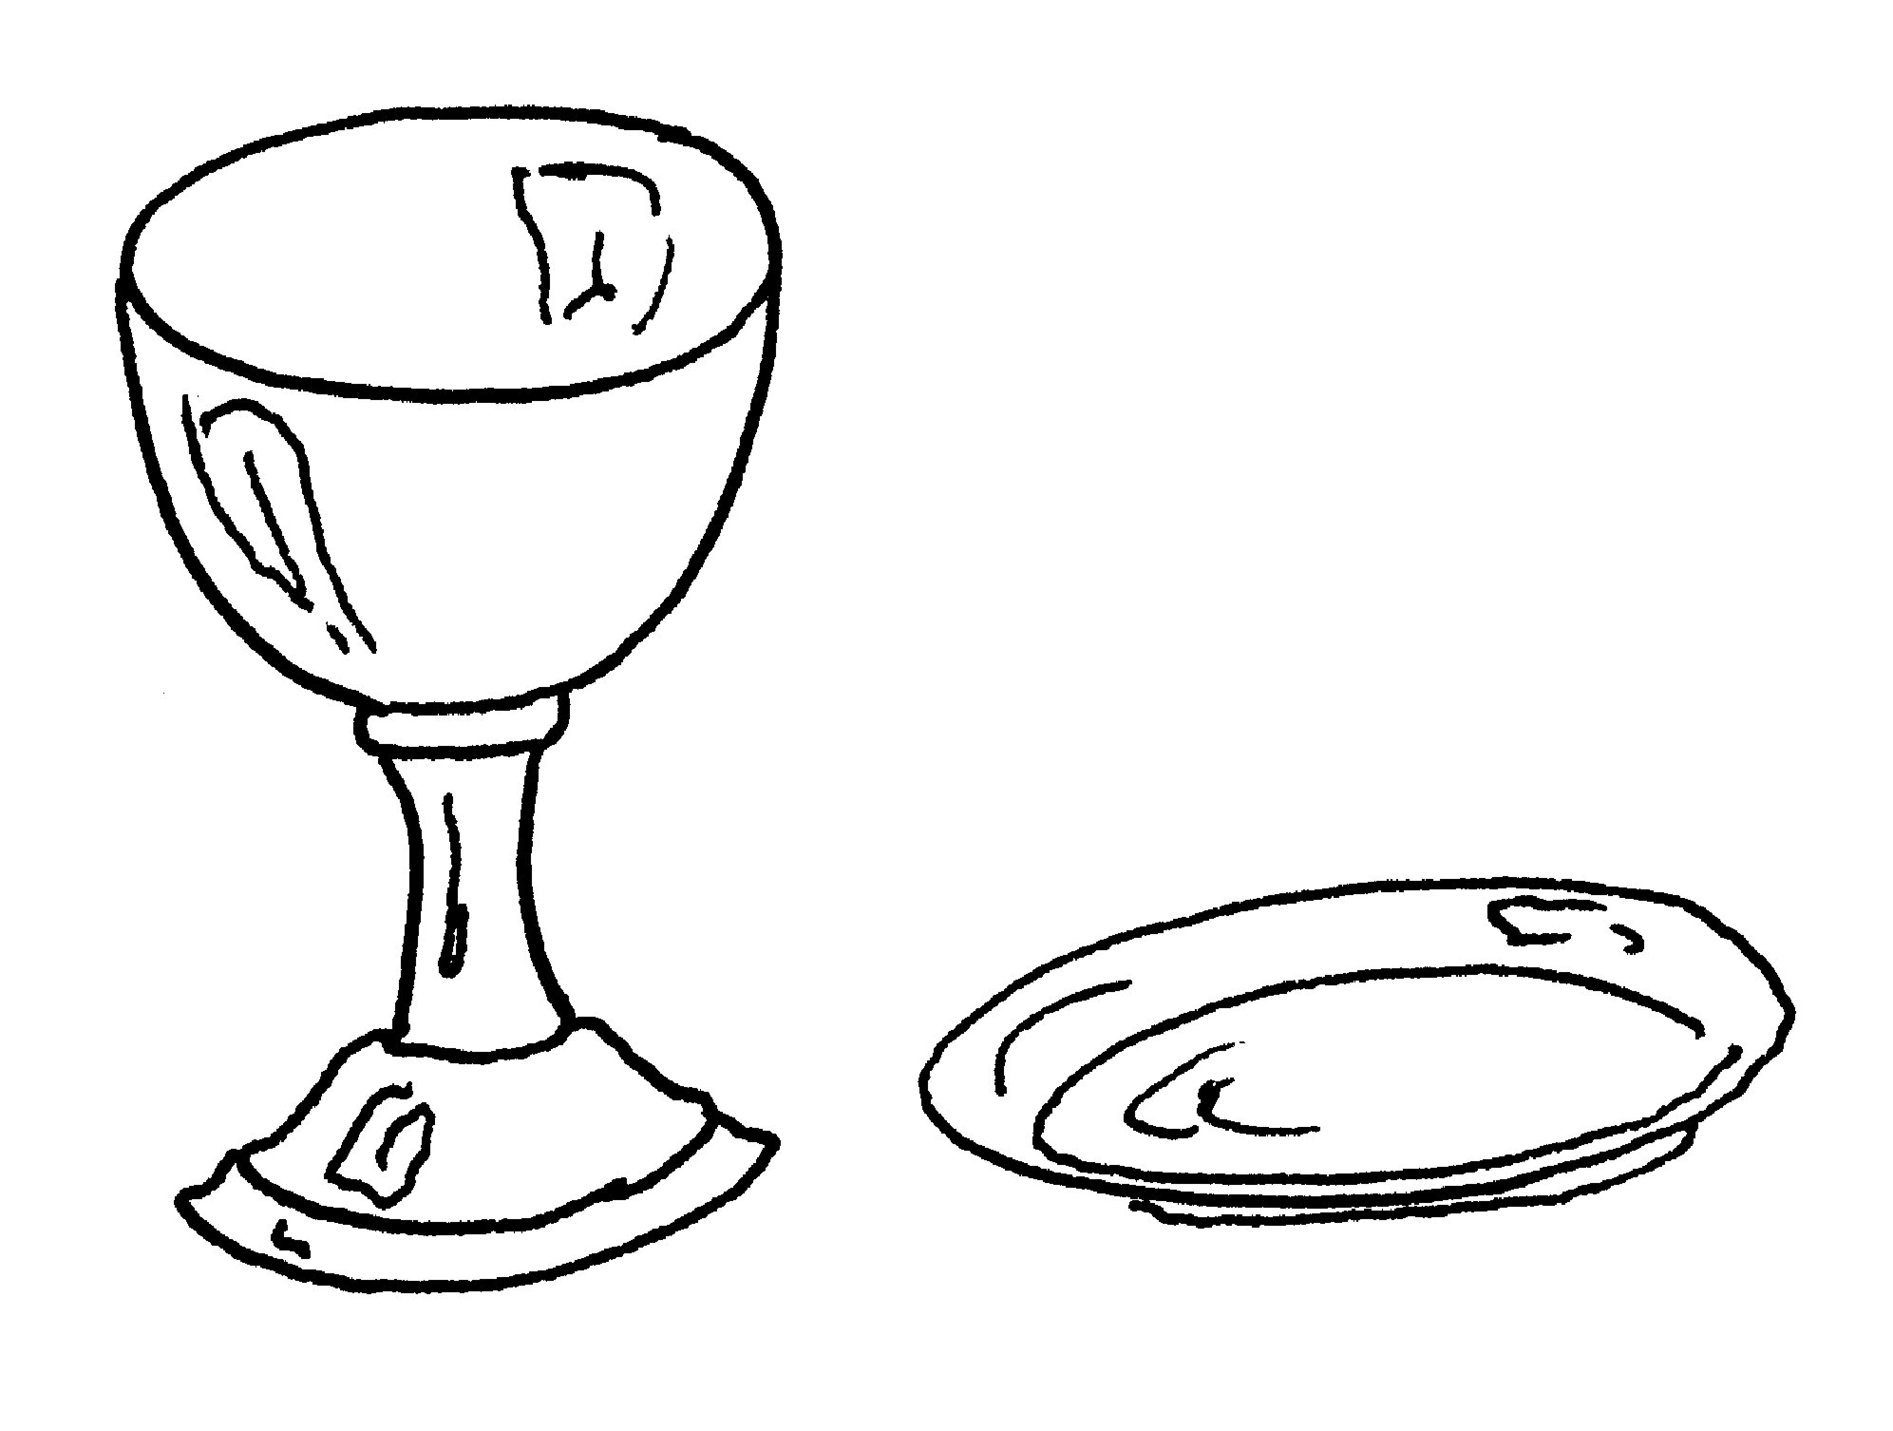 Chalice And Paten Clipart.